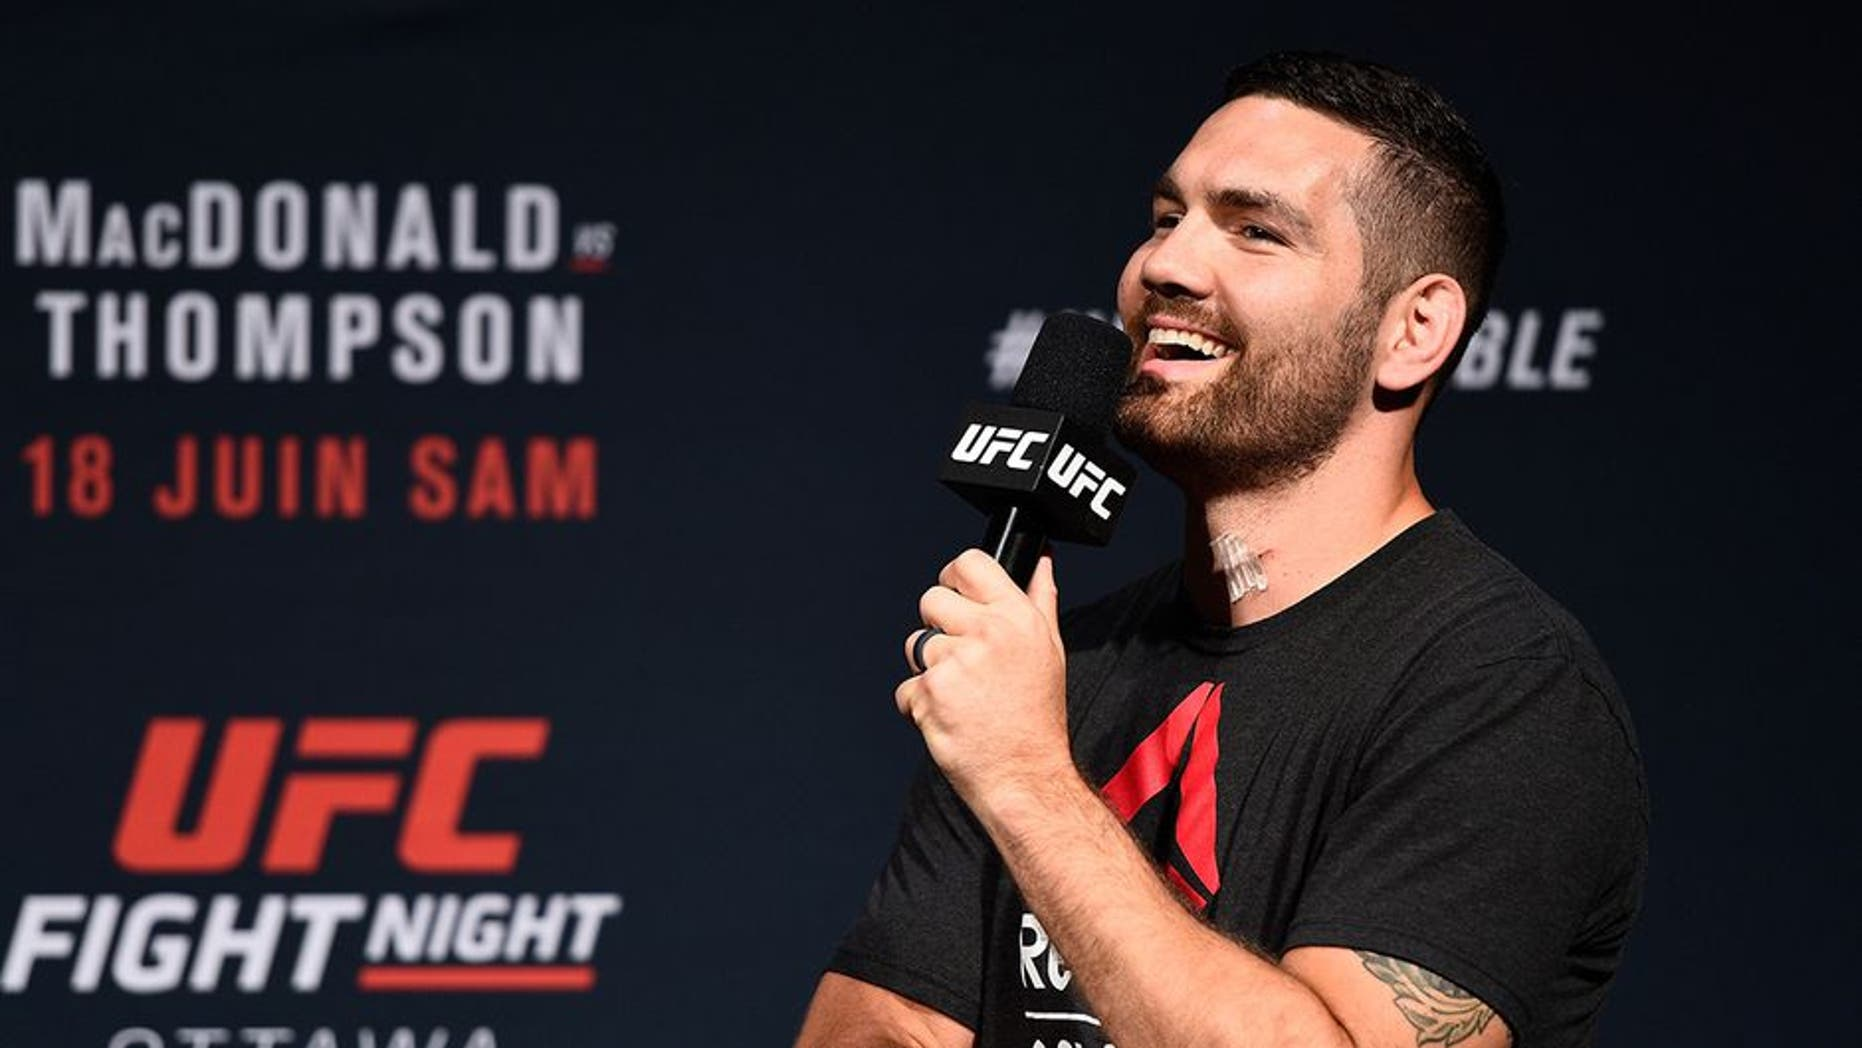 OTTAWA, ON - JUNE 17: Chris Weidman answers questions from fans during a Q&A before the UFC Fight Night Weigh-in inside the Arena at TD Place on June 17, 2016 in Ottawa, Ontario, Canada. (Photo by Jeff Bottari/Zuffa LLC/Zuffa LLC via Getty Images)